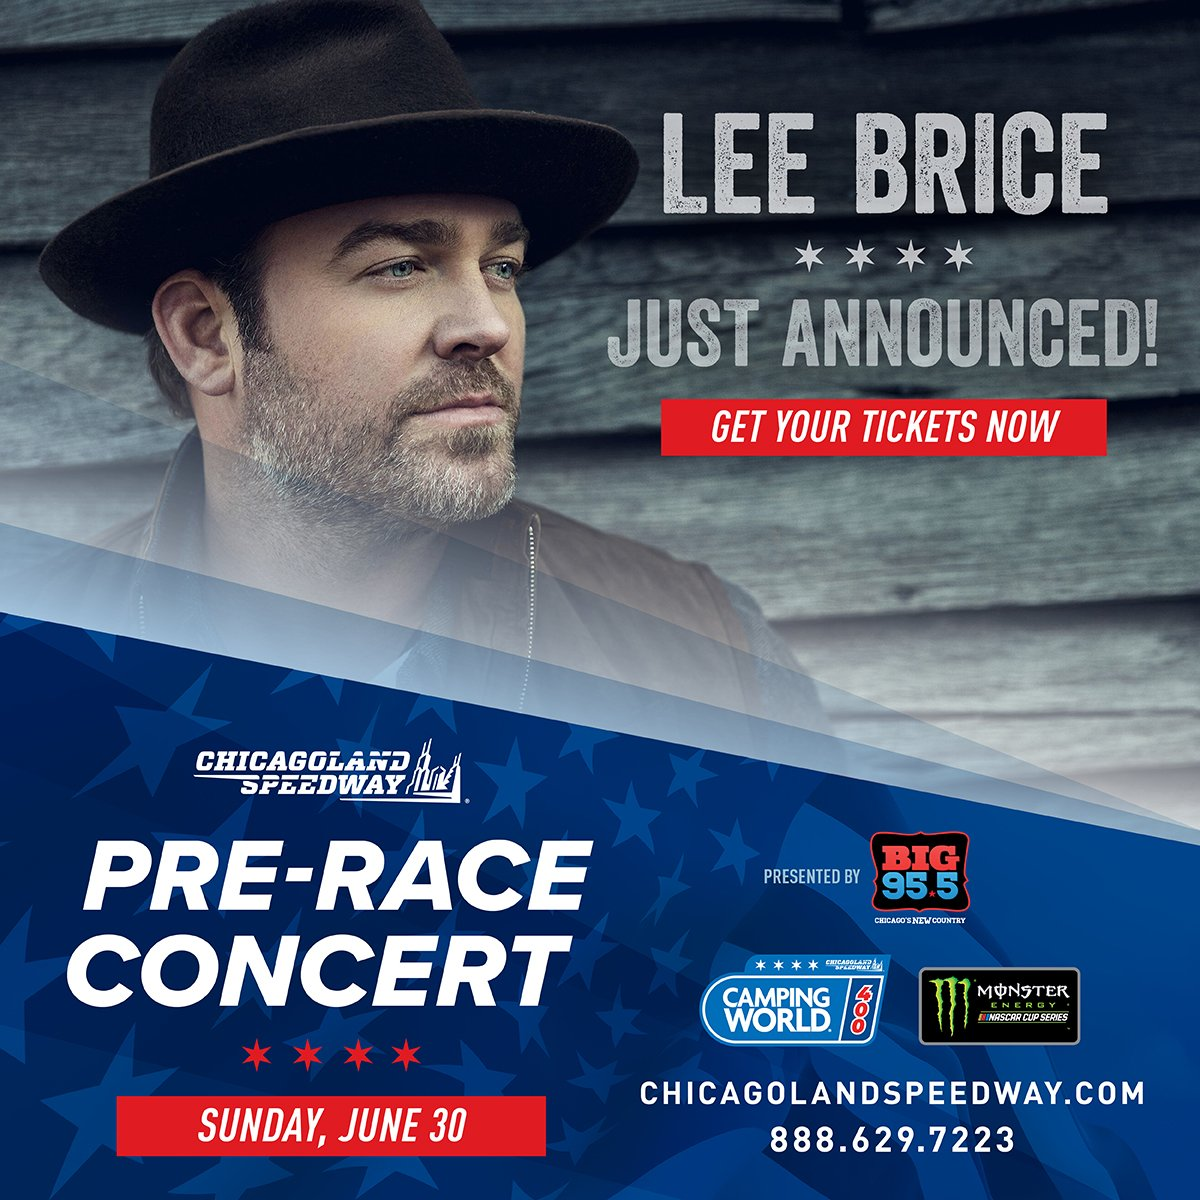 lee brice @ big955chicago